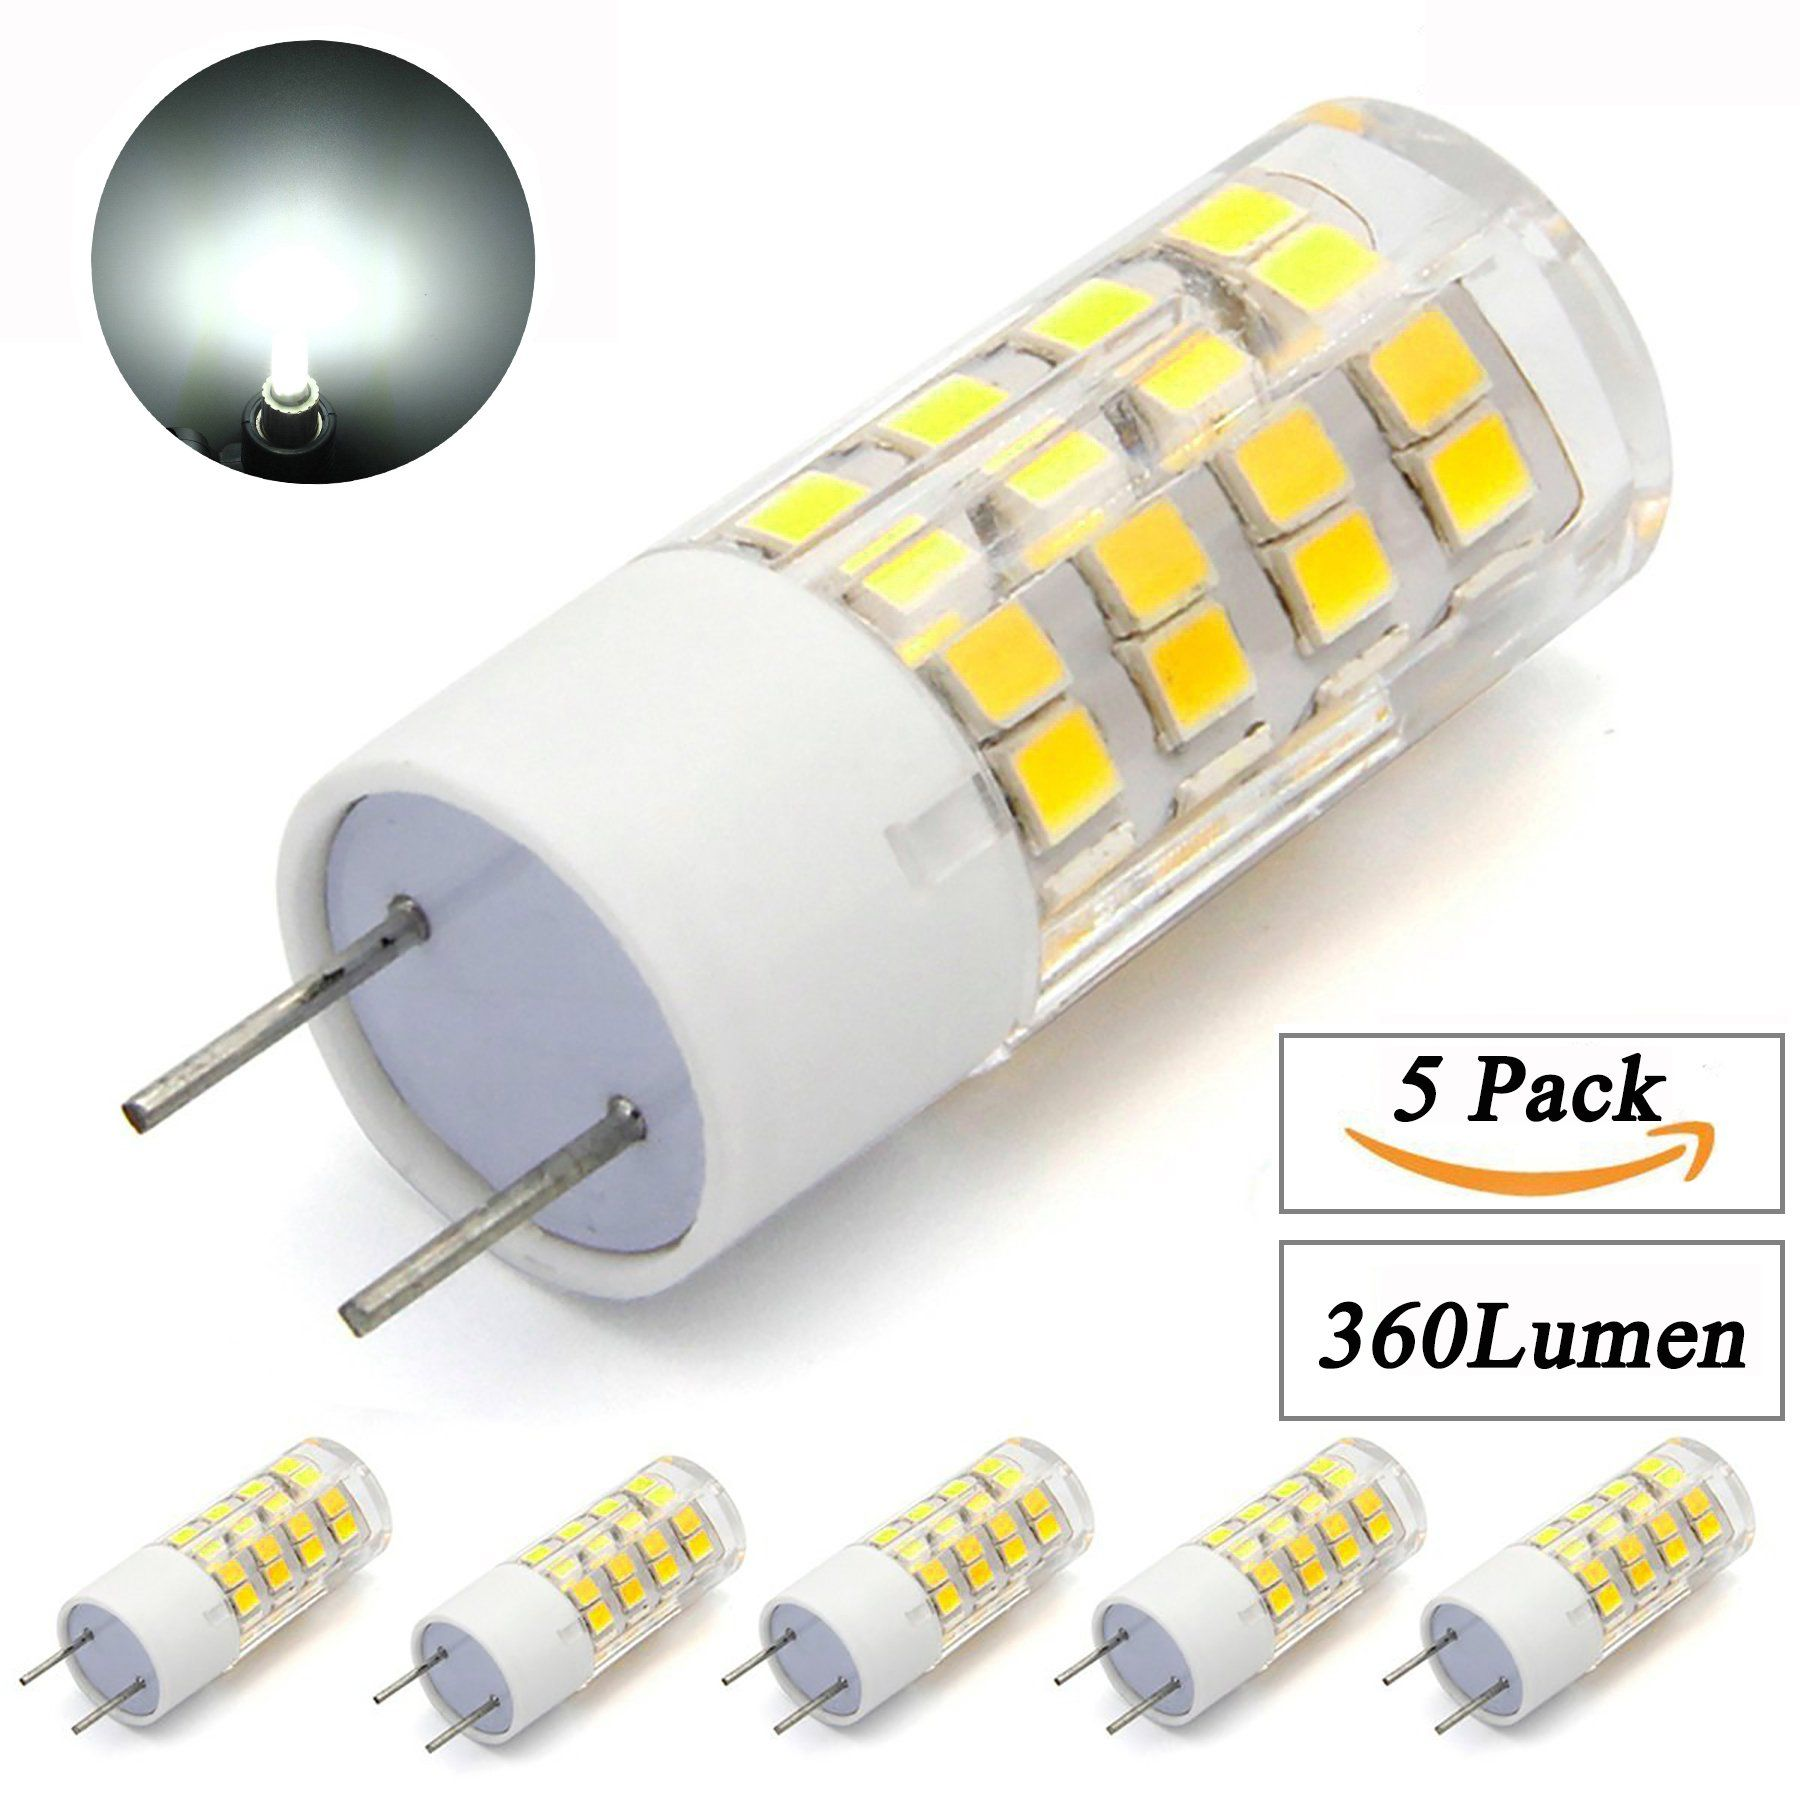 Mcden G8 G8 5 Bipin 51led Ac120v White 6000k Dimmable 4w Led Bulbsreplace 35w Halogen Lamps5pack You Could Obtain Even More Led Bulb Halogen Lamp Light Bulb